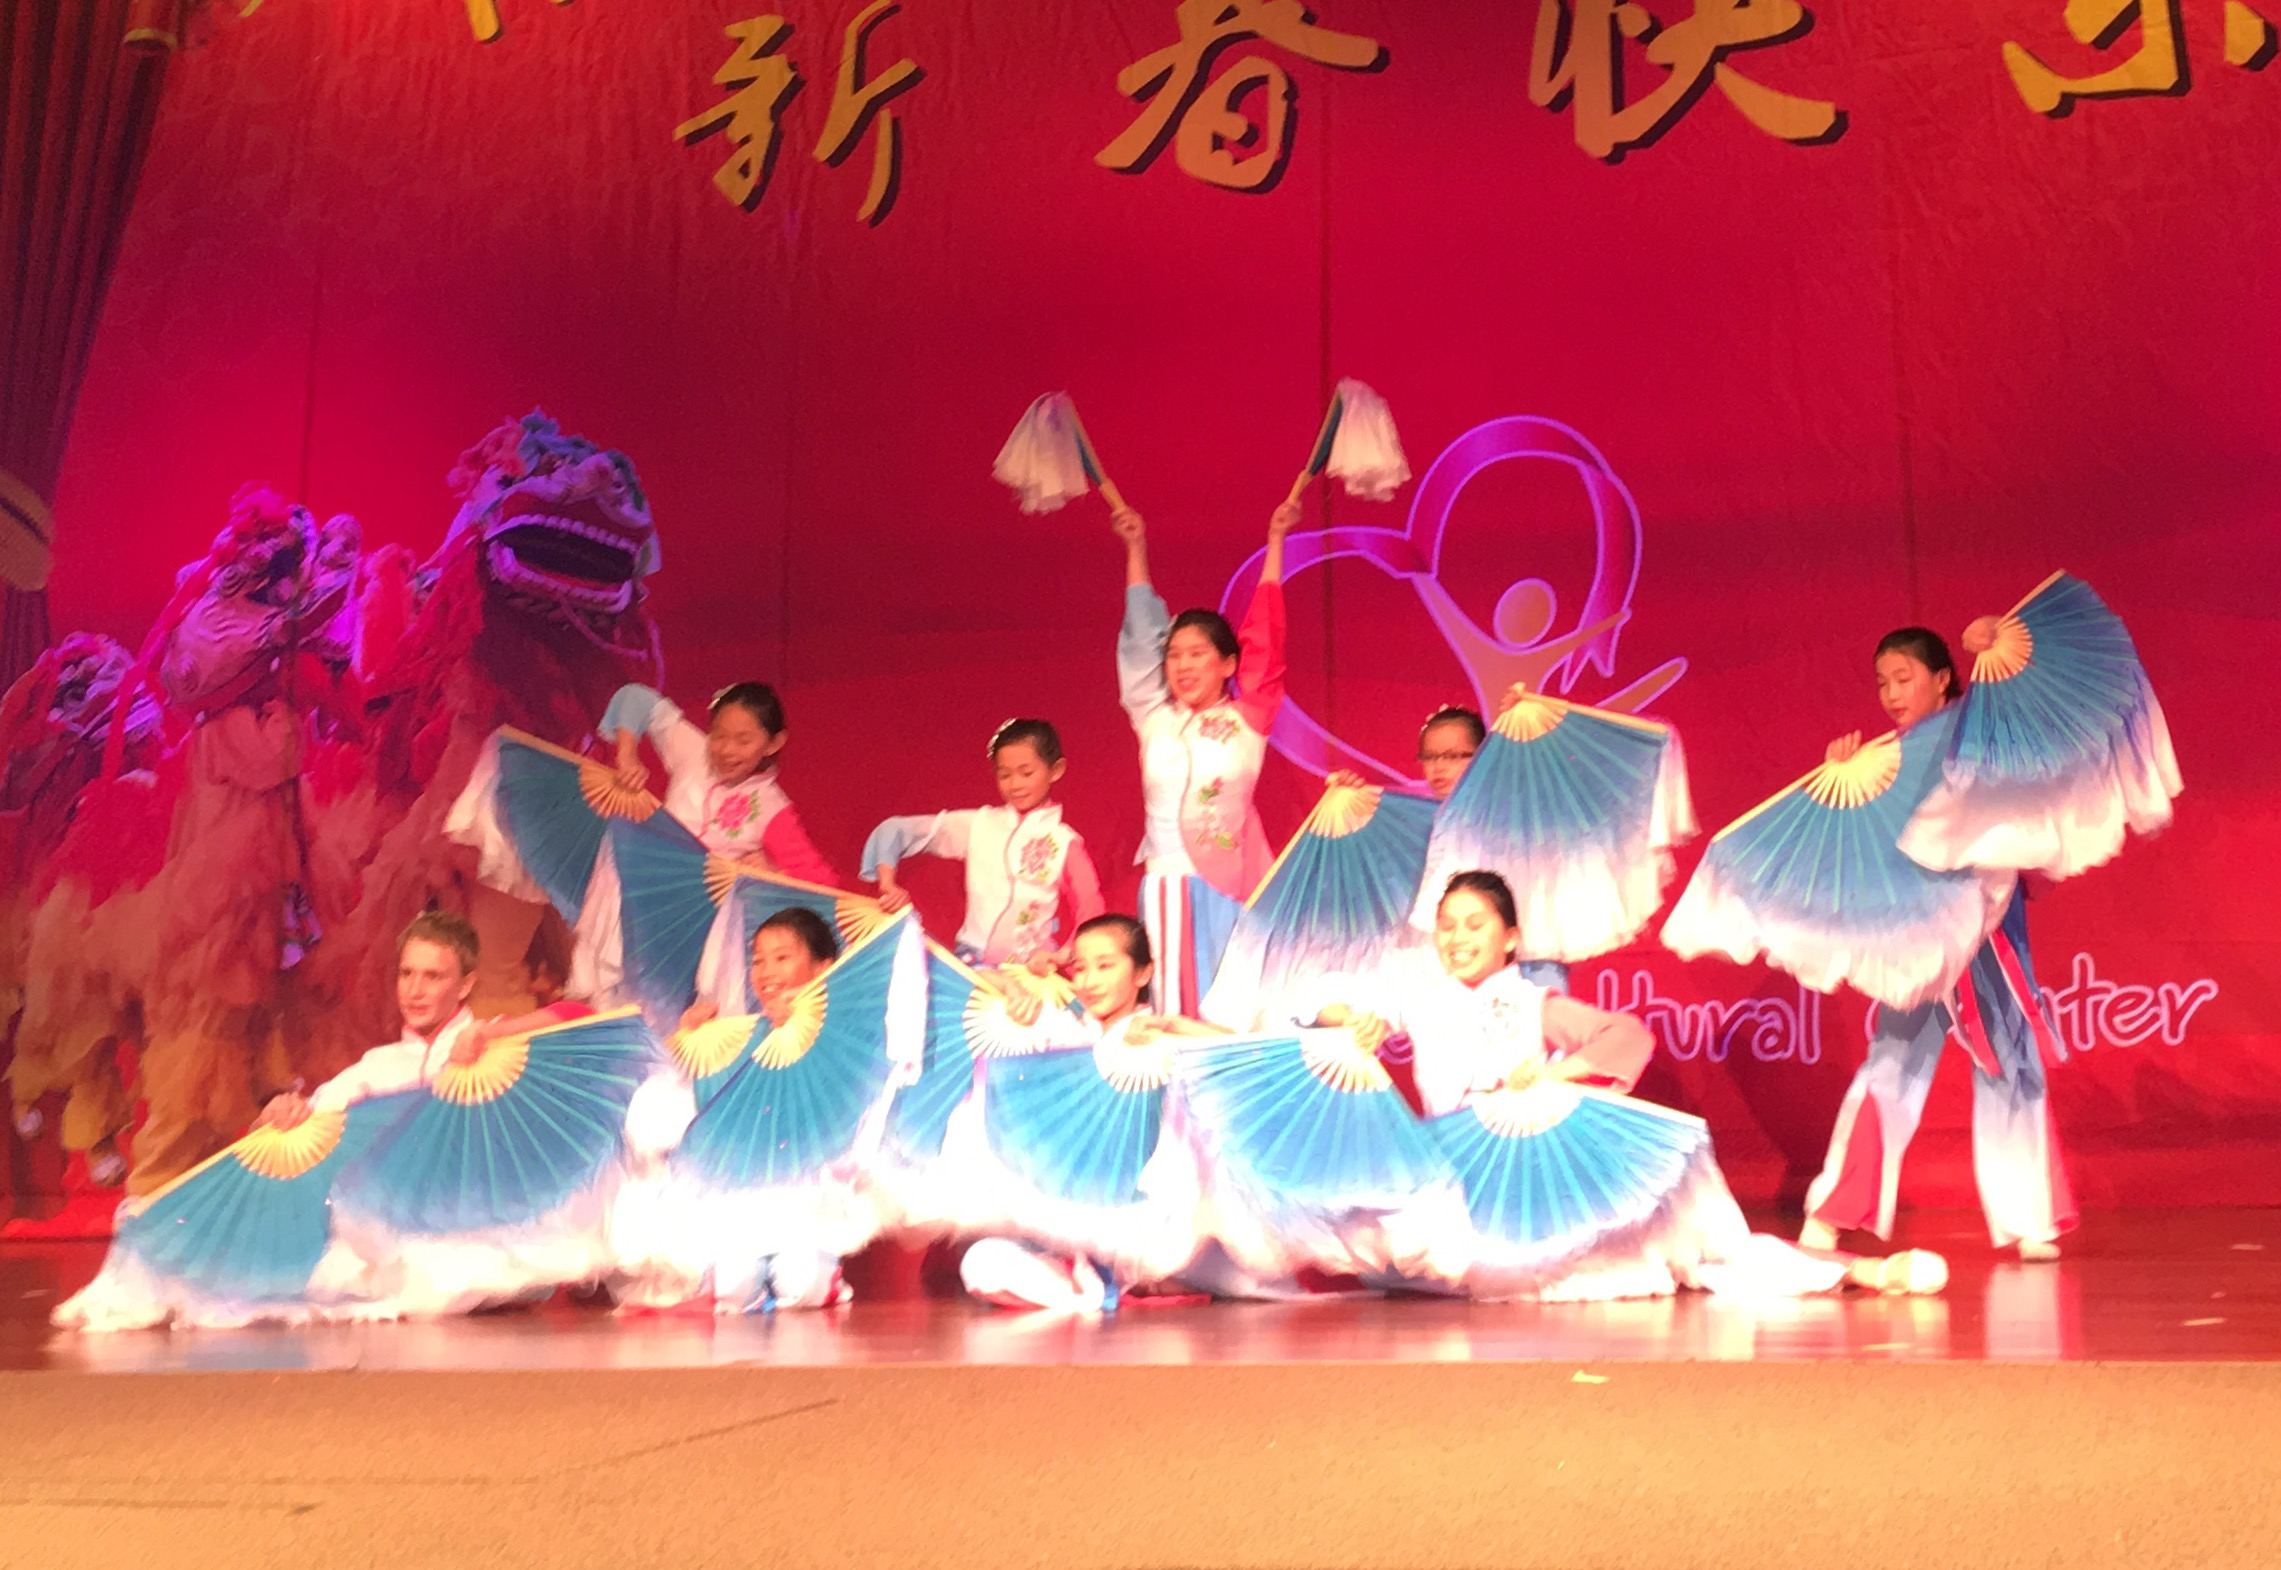 Chinese Level 8 Dance Class Performs Traditional Fan Dance